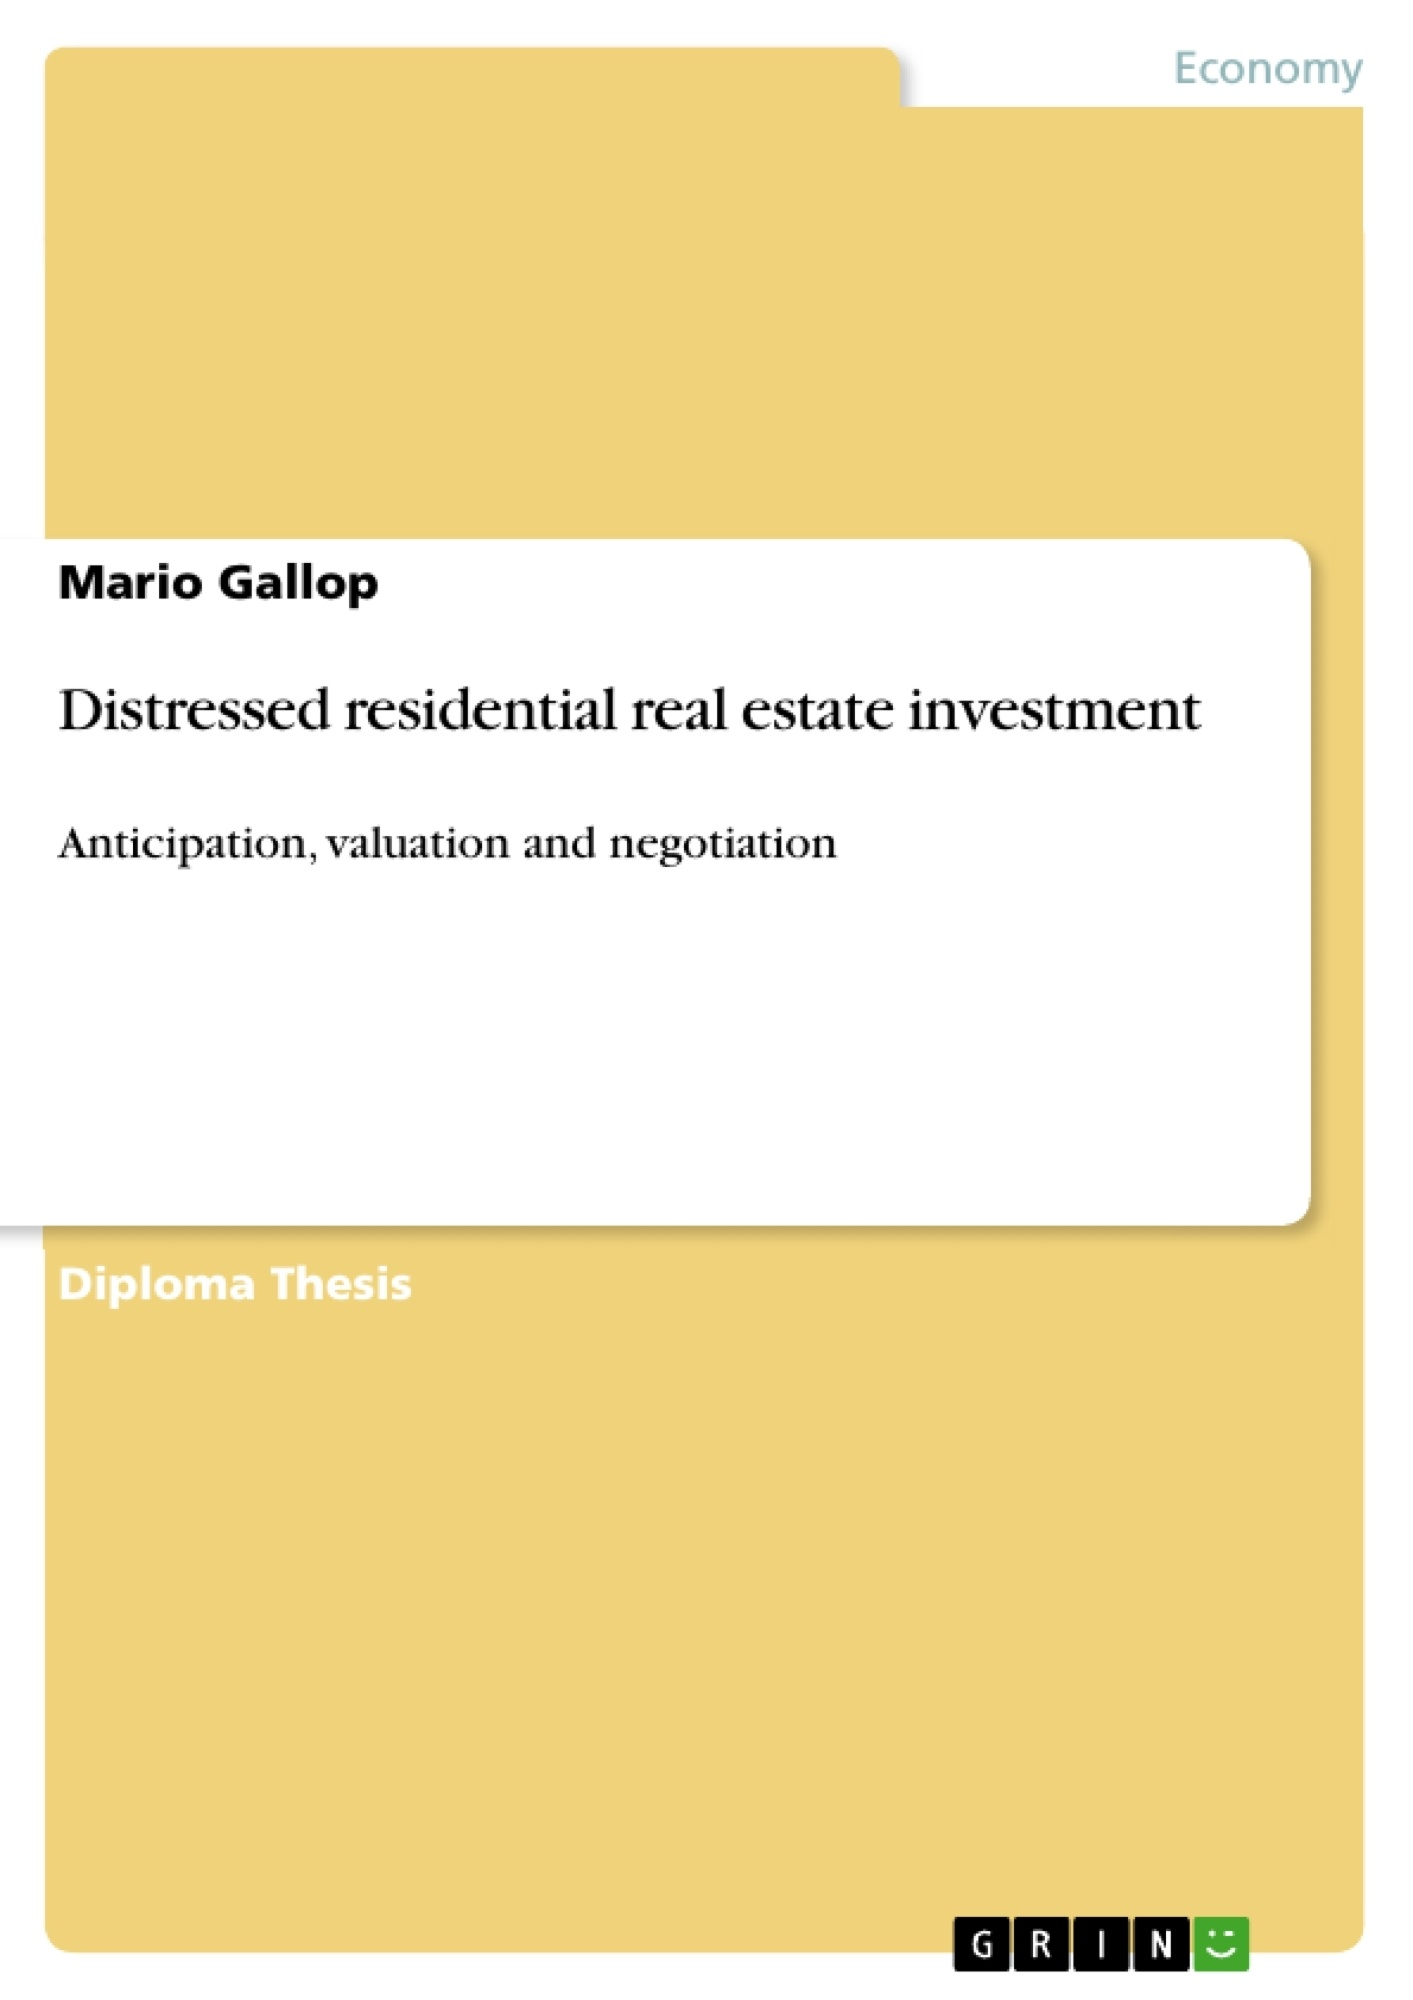 Title: Distressed residential real estate investment